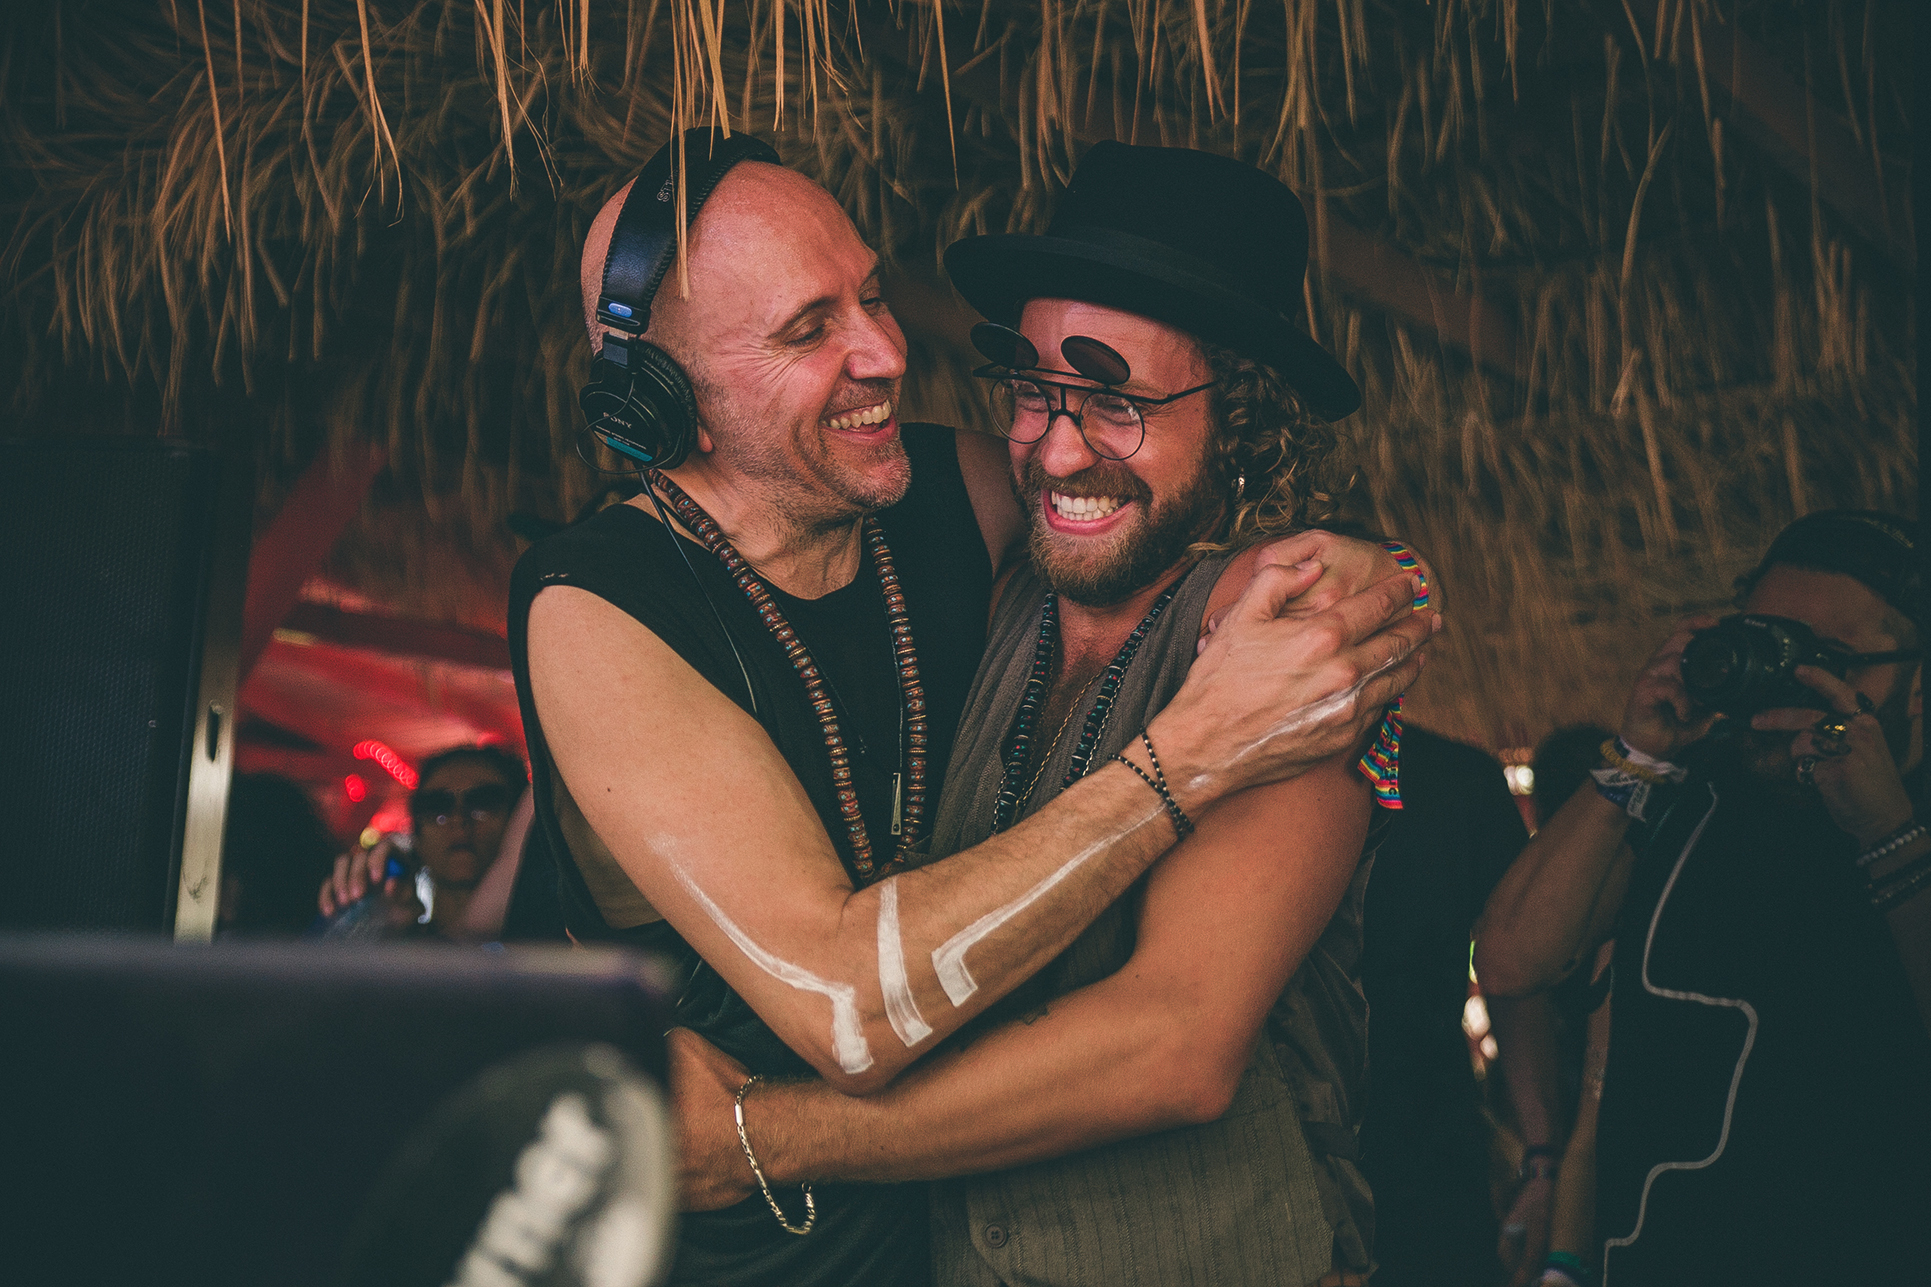 Lee Burridge & YokoO at SXM Festival 2015, photographed by Ded Agency